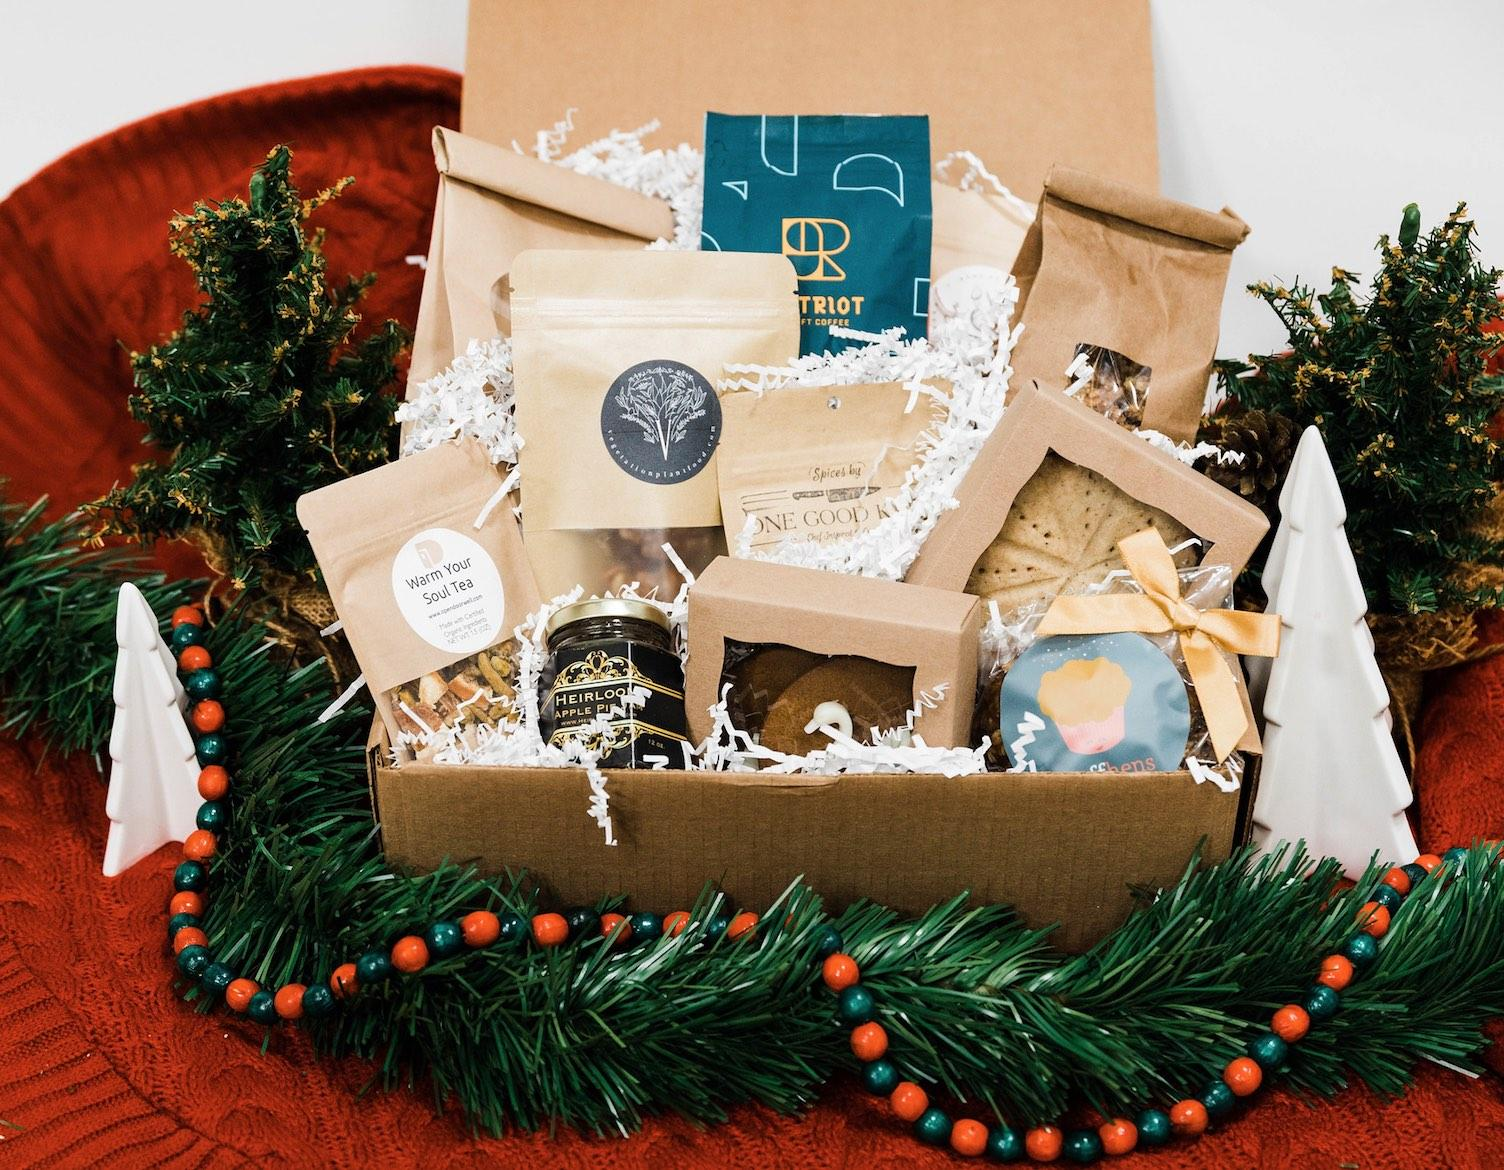 Medium gift box with assortment of treats and goodies